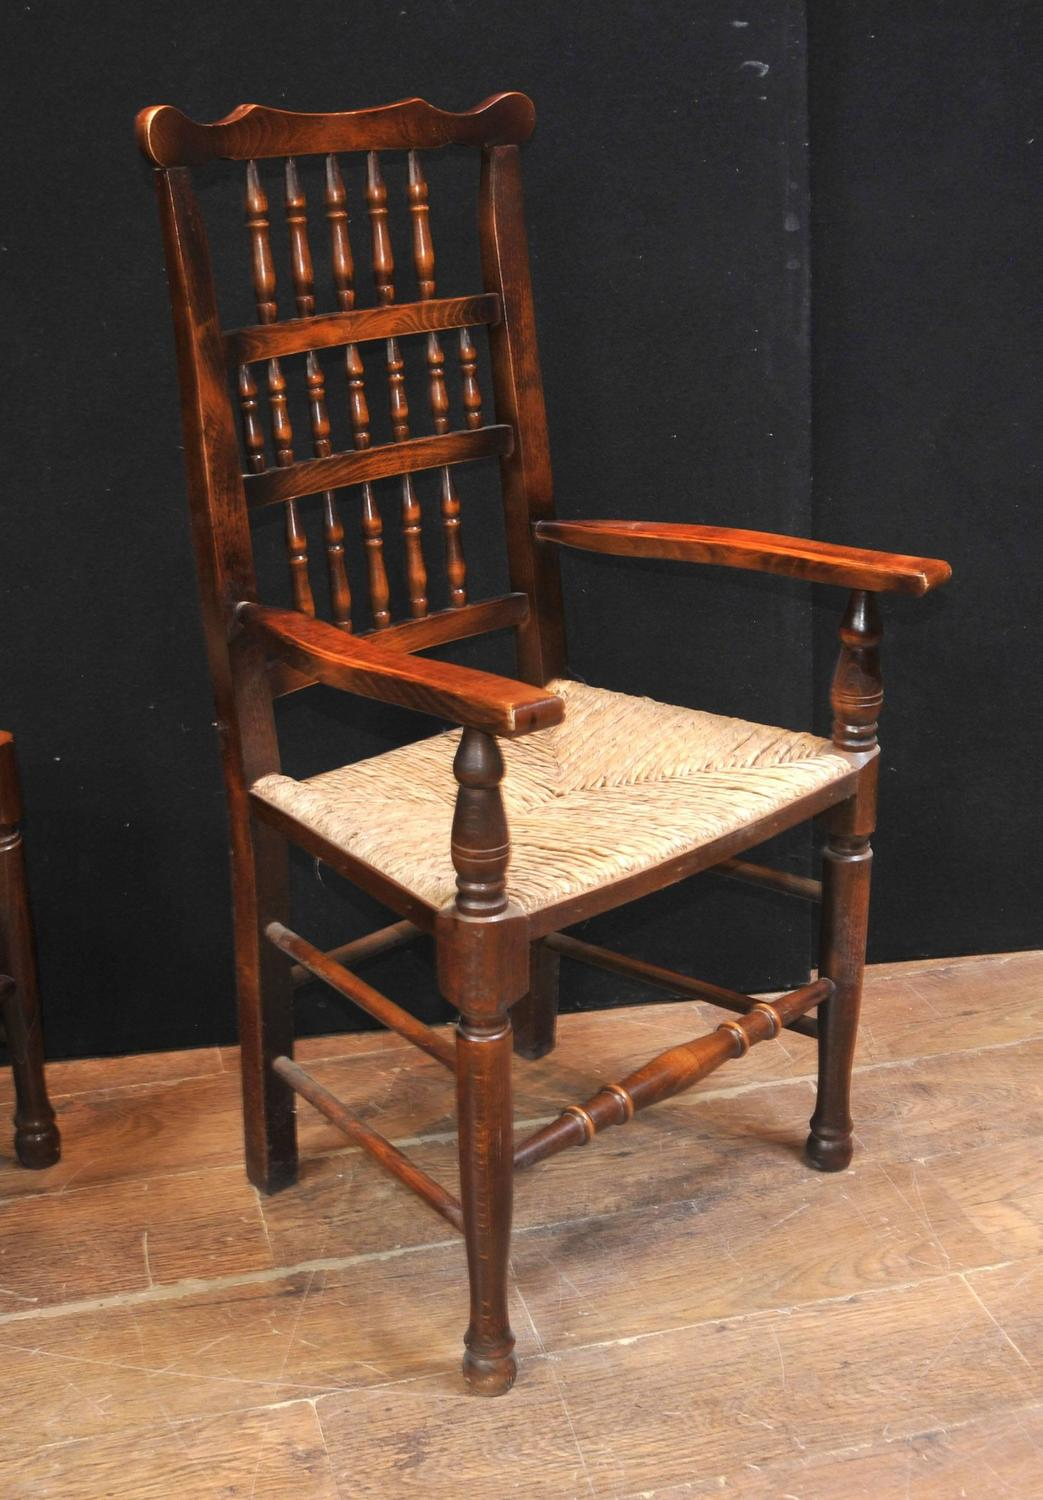 farmhouse chairs for sale chair that folds out into a bed set of eight oak spindle back dining kitchen